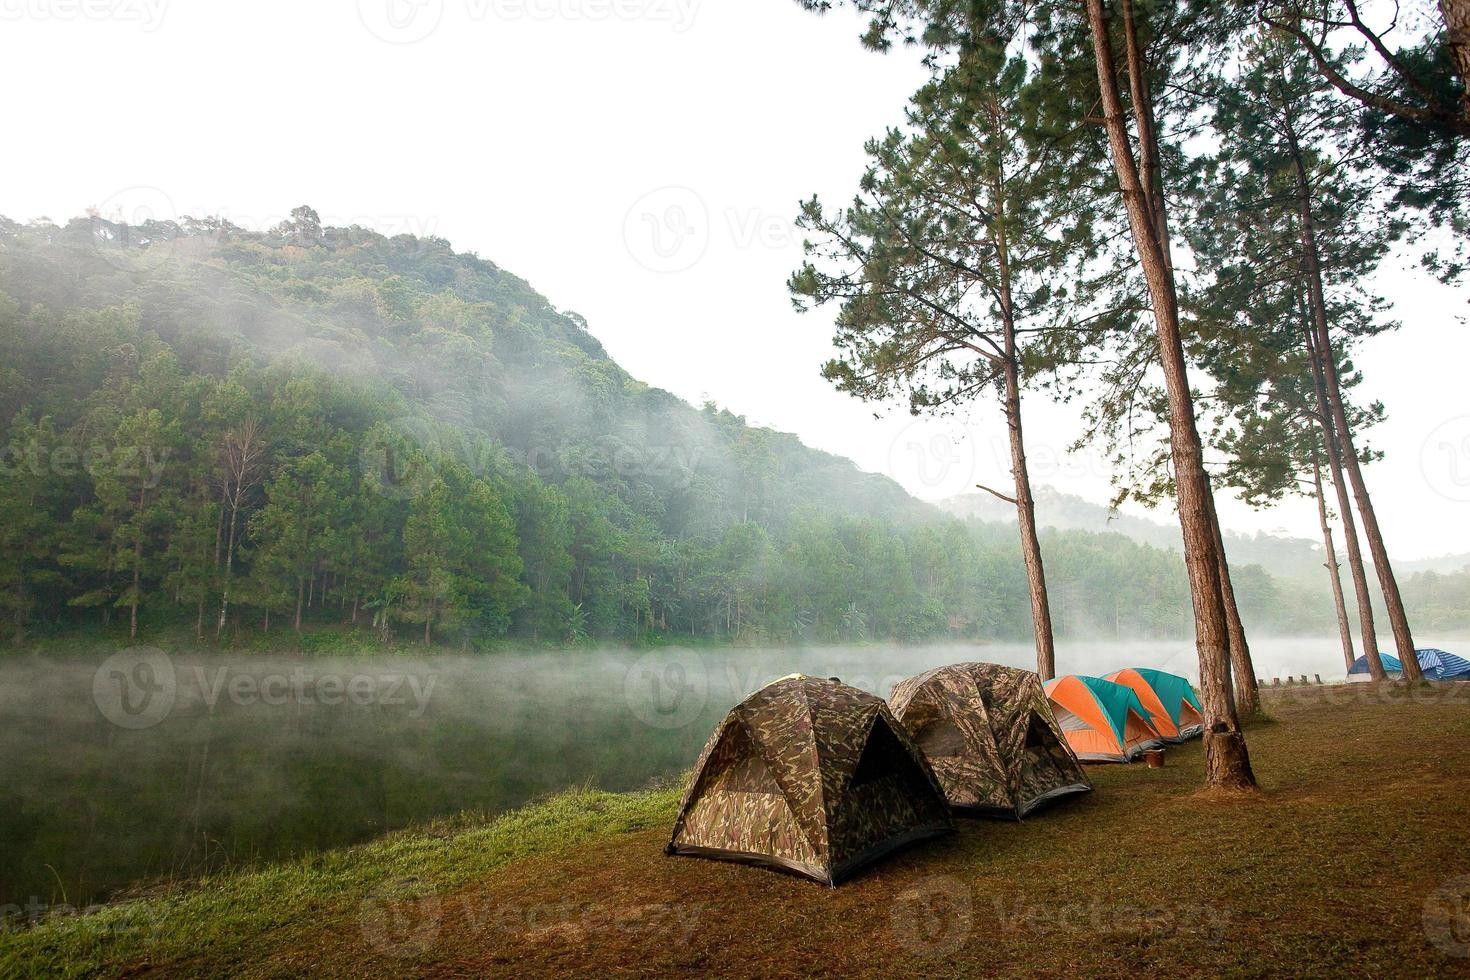 Tents set up for camping photo